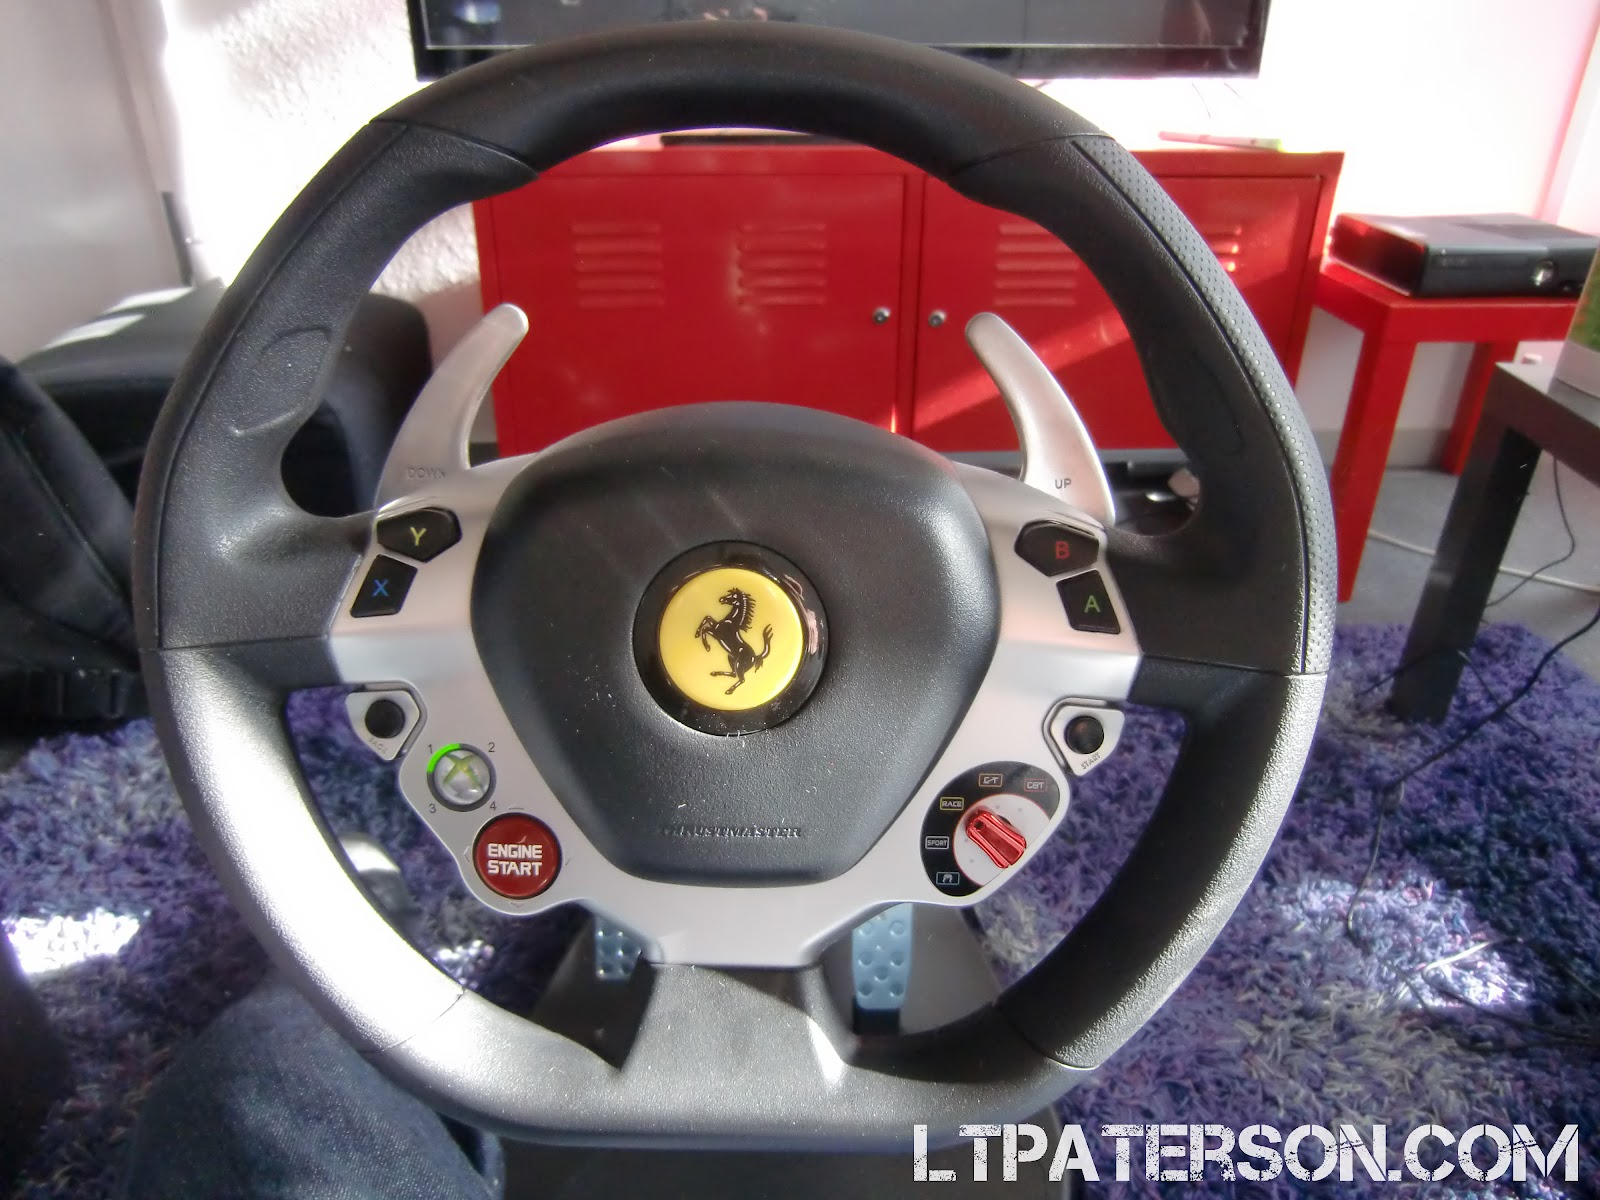 test ferrari vibration gt cockpit 458 italia dition de thrustmaster blog jeux. Black Bedroom Furniture Sets. Home Design Ideas